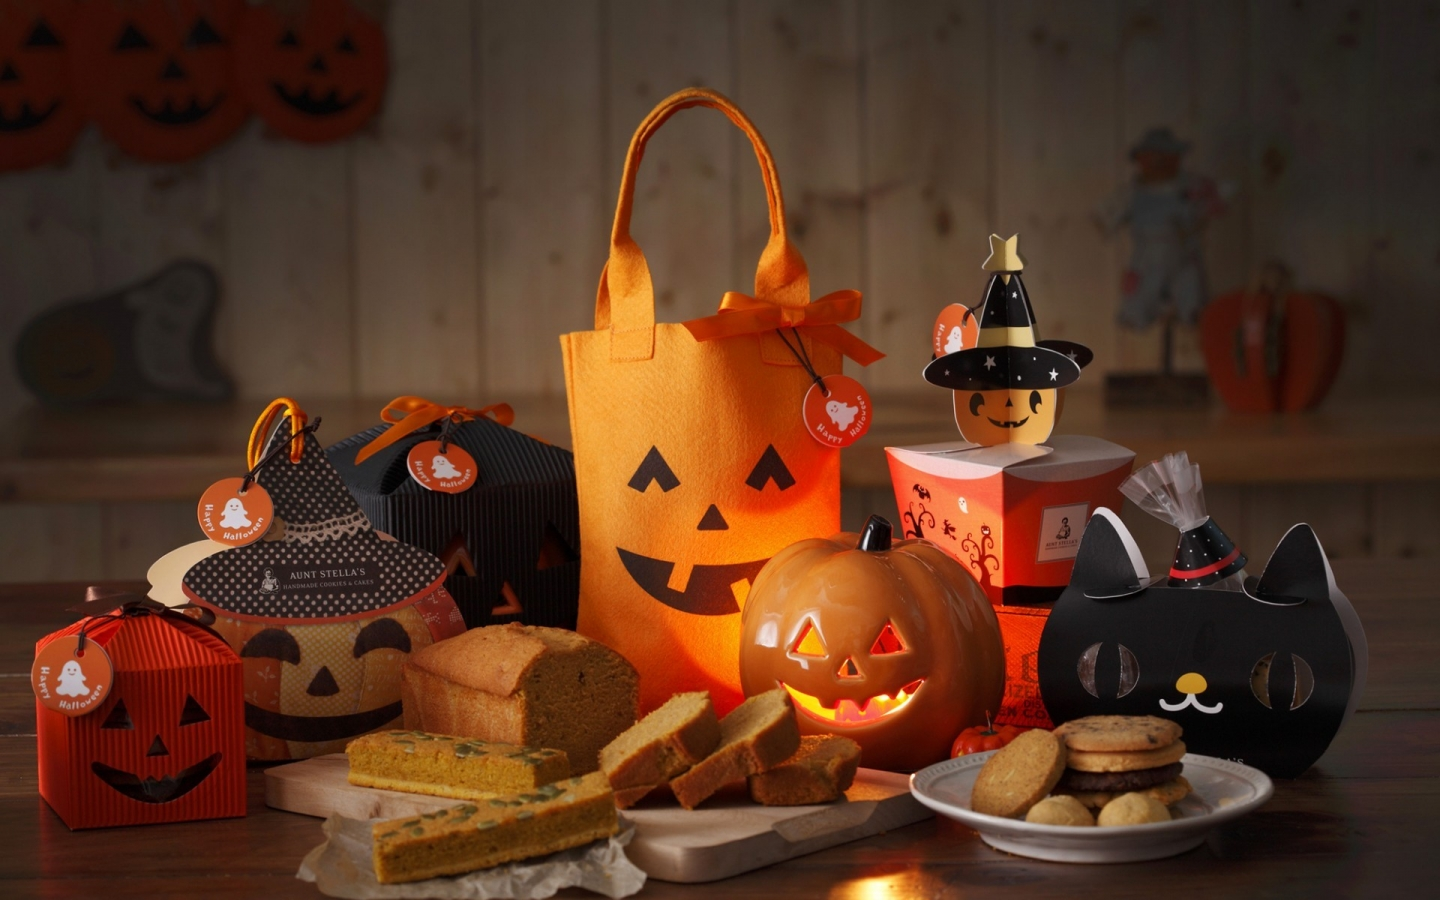 Halloween Meal for 1440 x 900 widescreen resolution